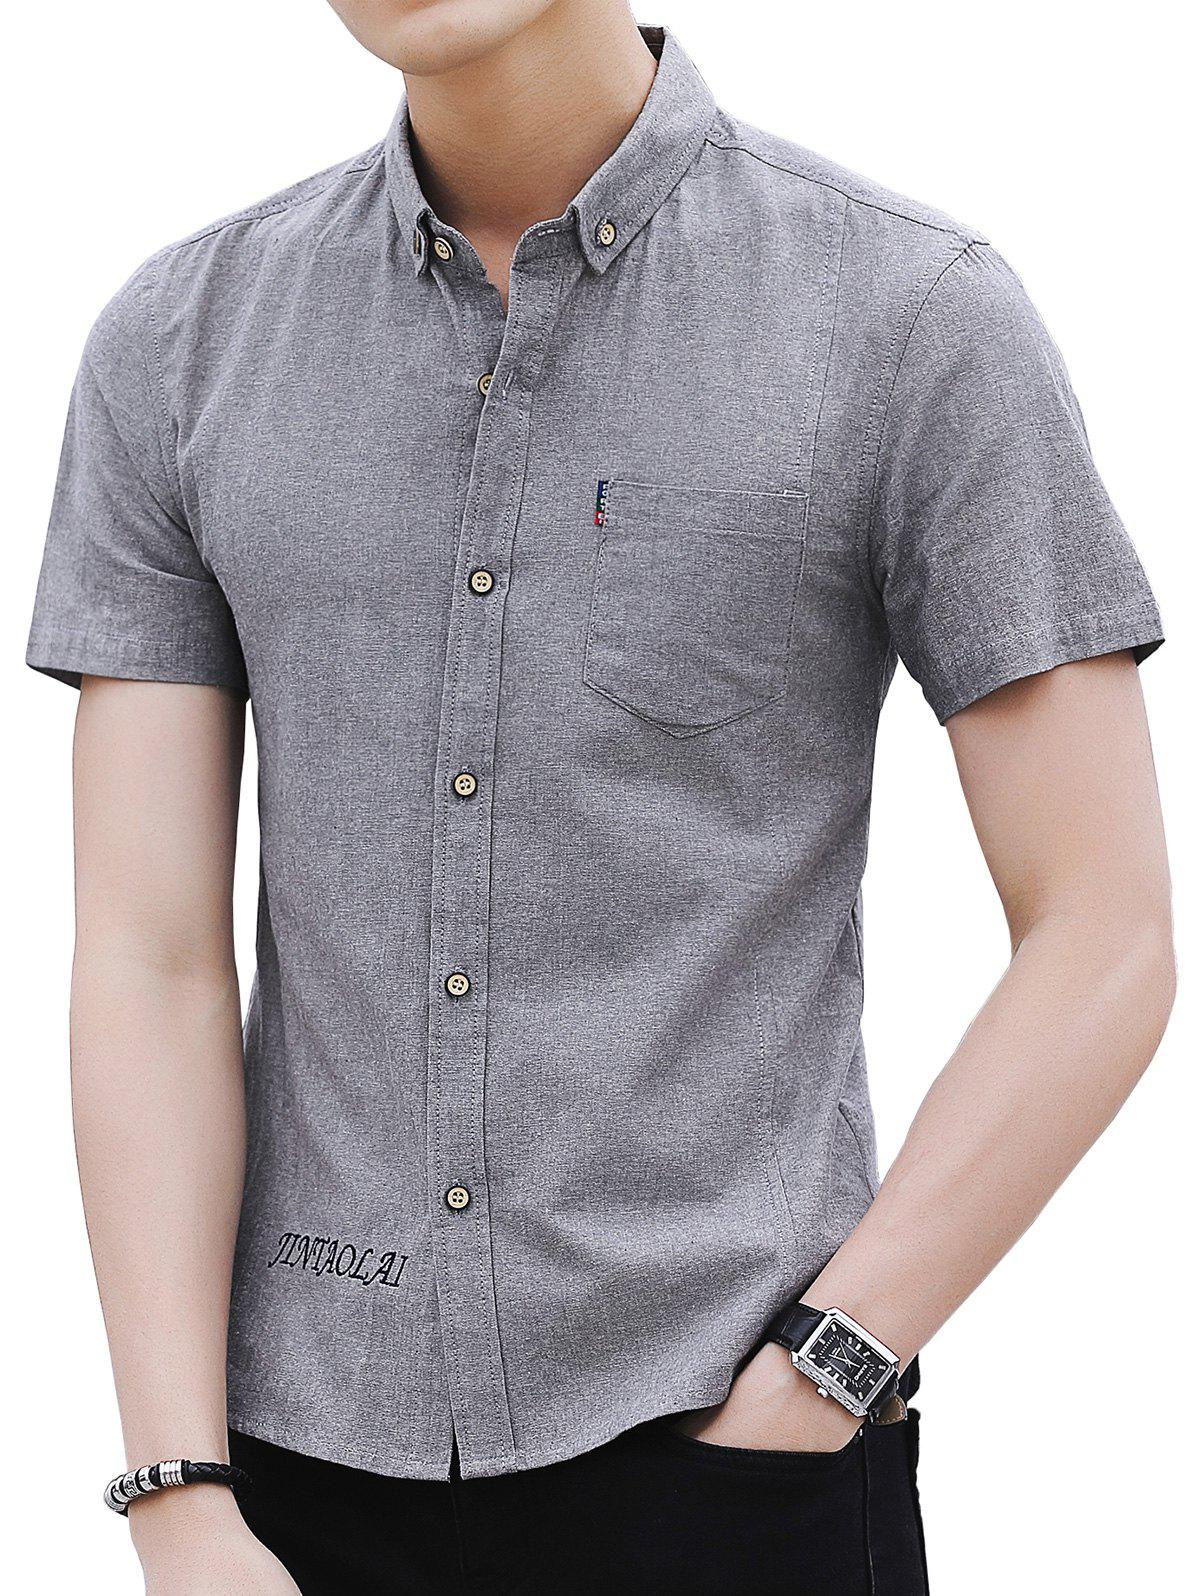 Buy Chest Pocket Embroidery Letter Casual Shirt